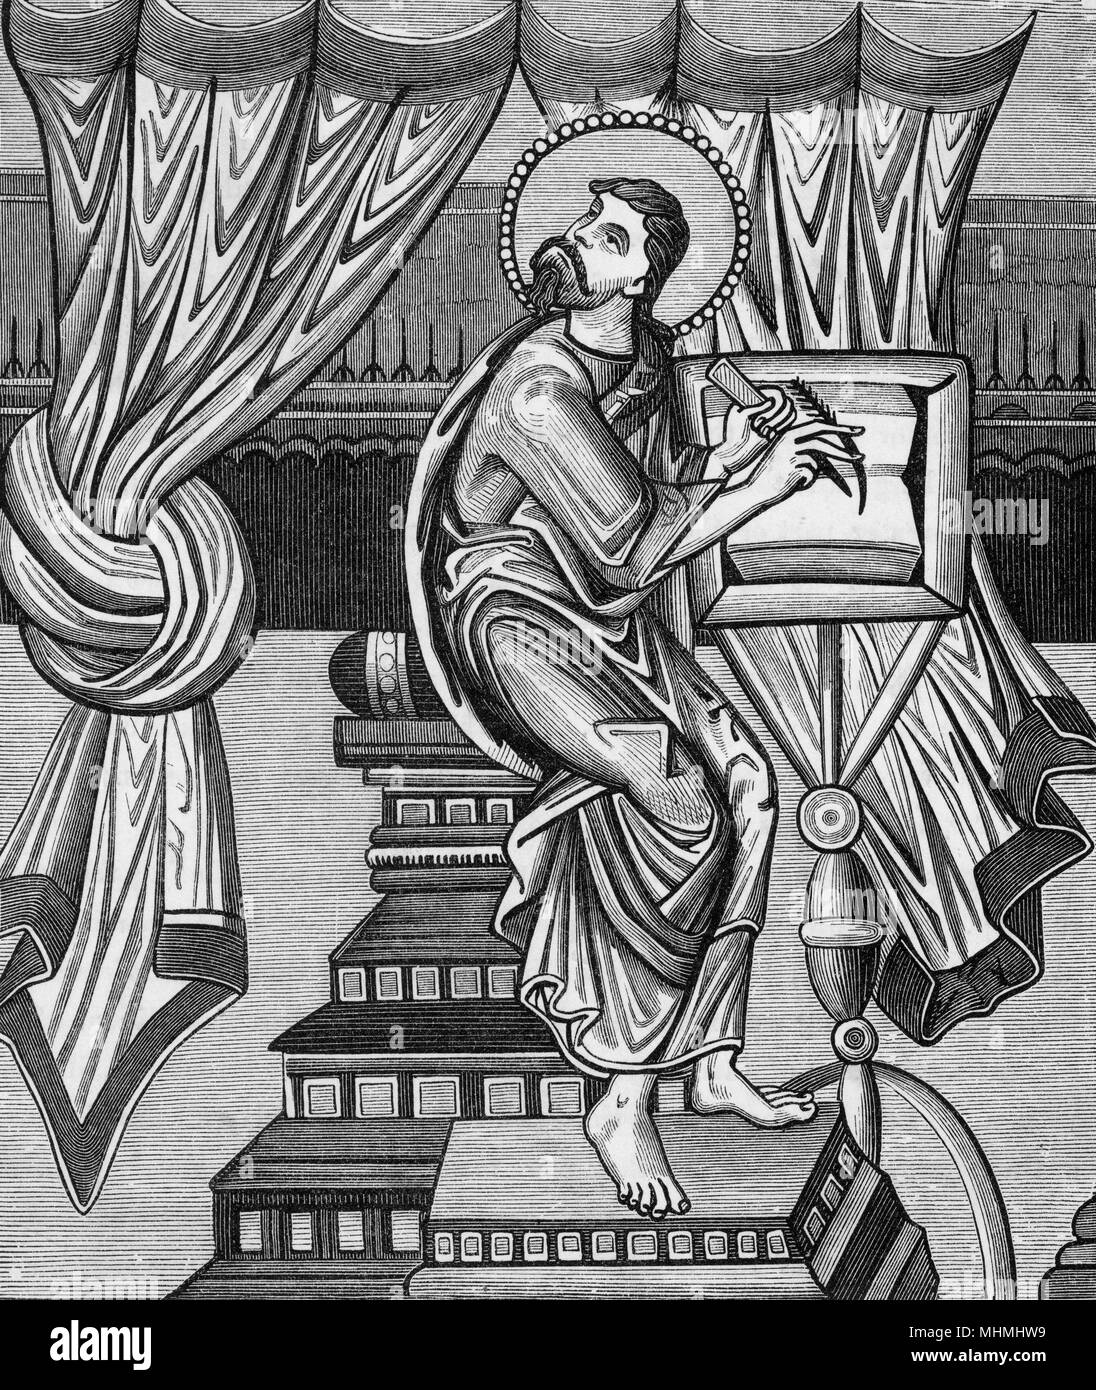 A medieval scholar looks to the heavens for inspiration       Date: 9th century - Stock Image